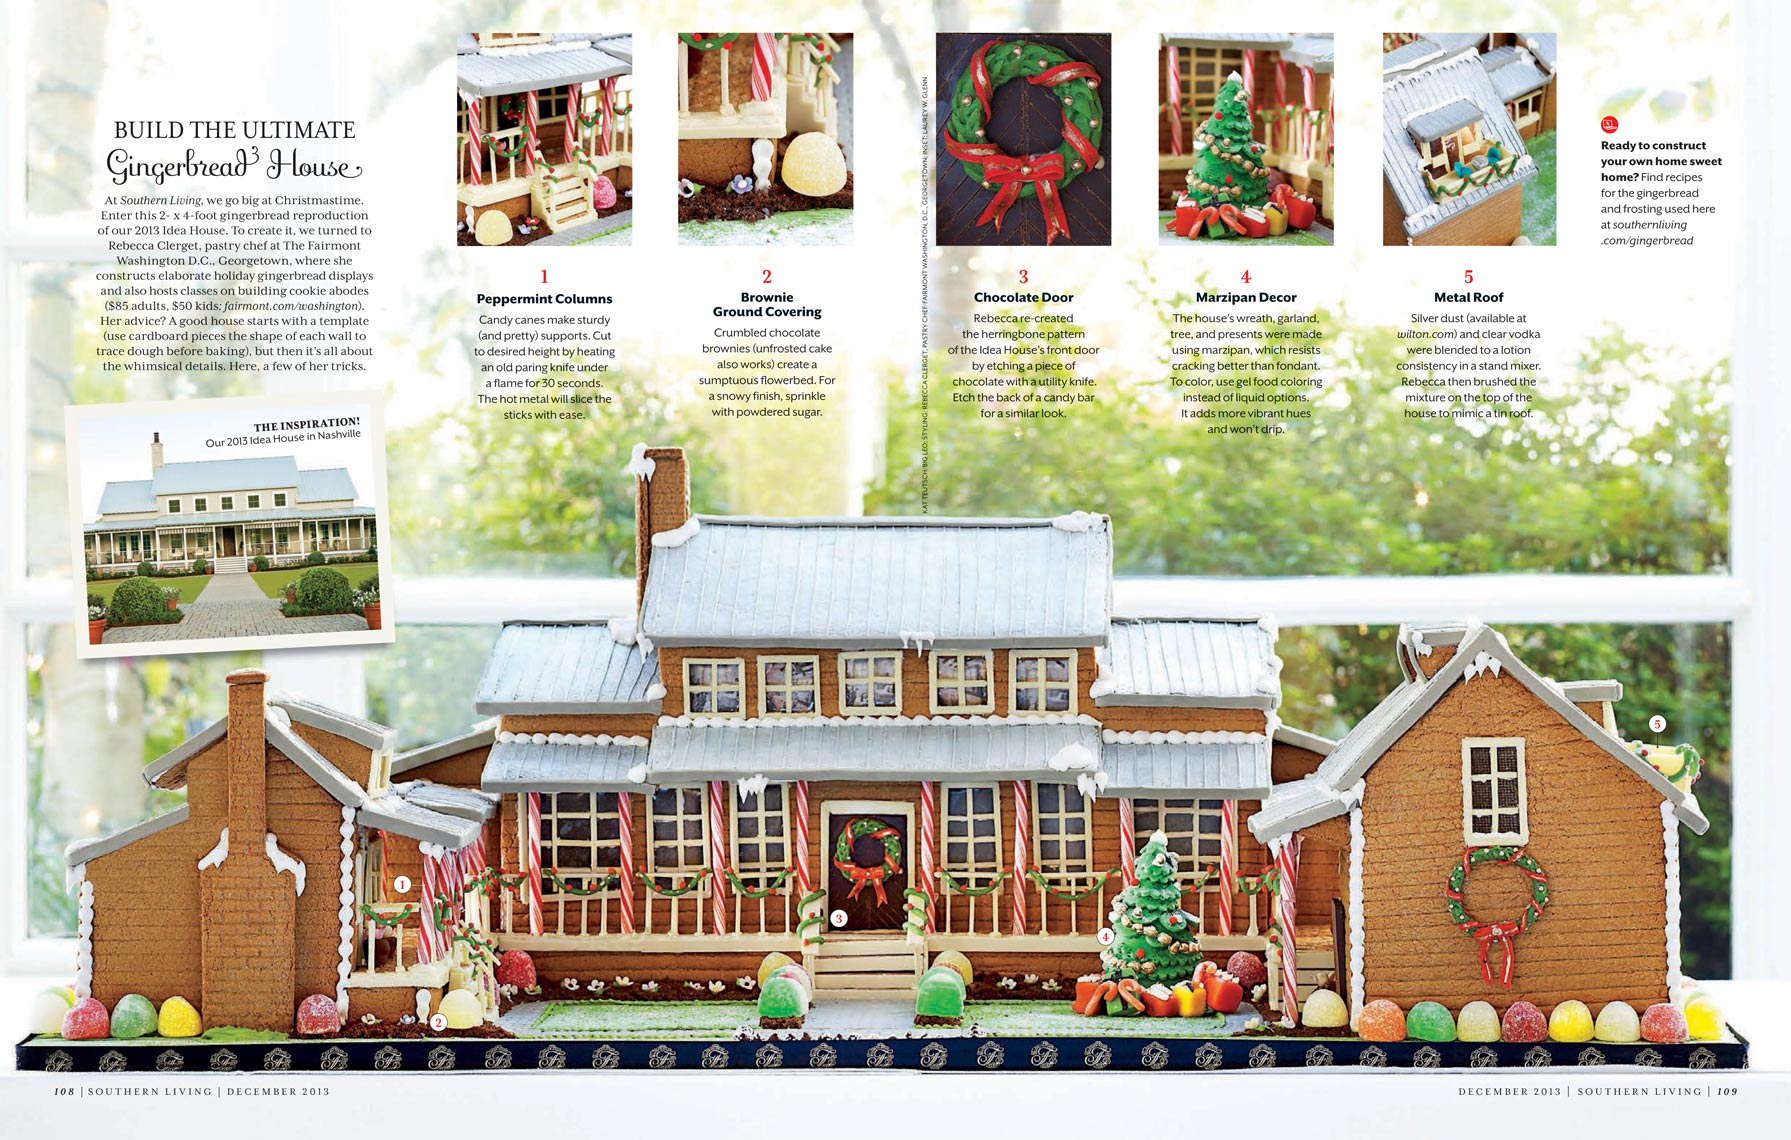 1312_SOUTHERNLIVING_GINGERHOUSE.jpg